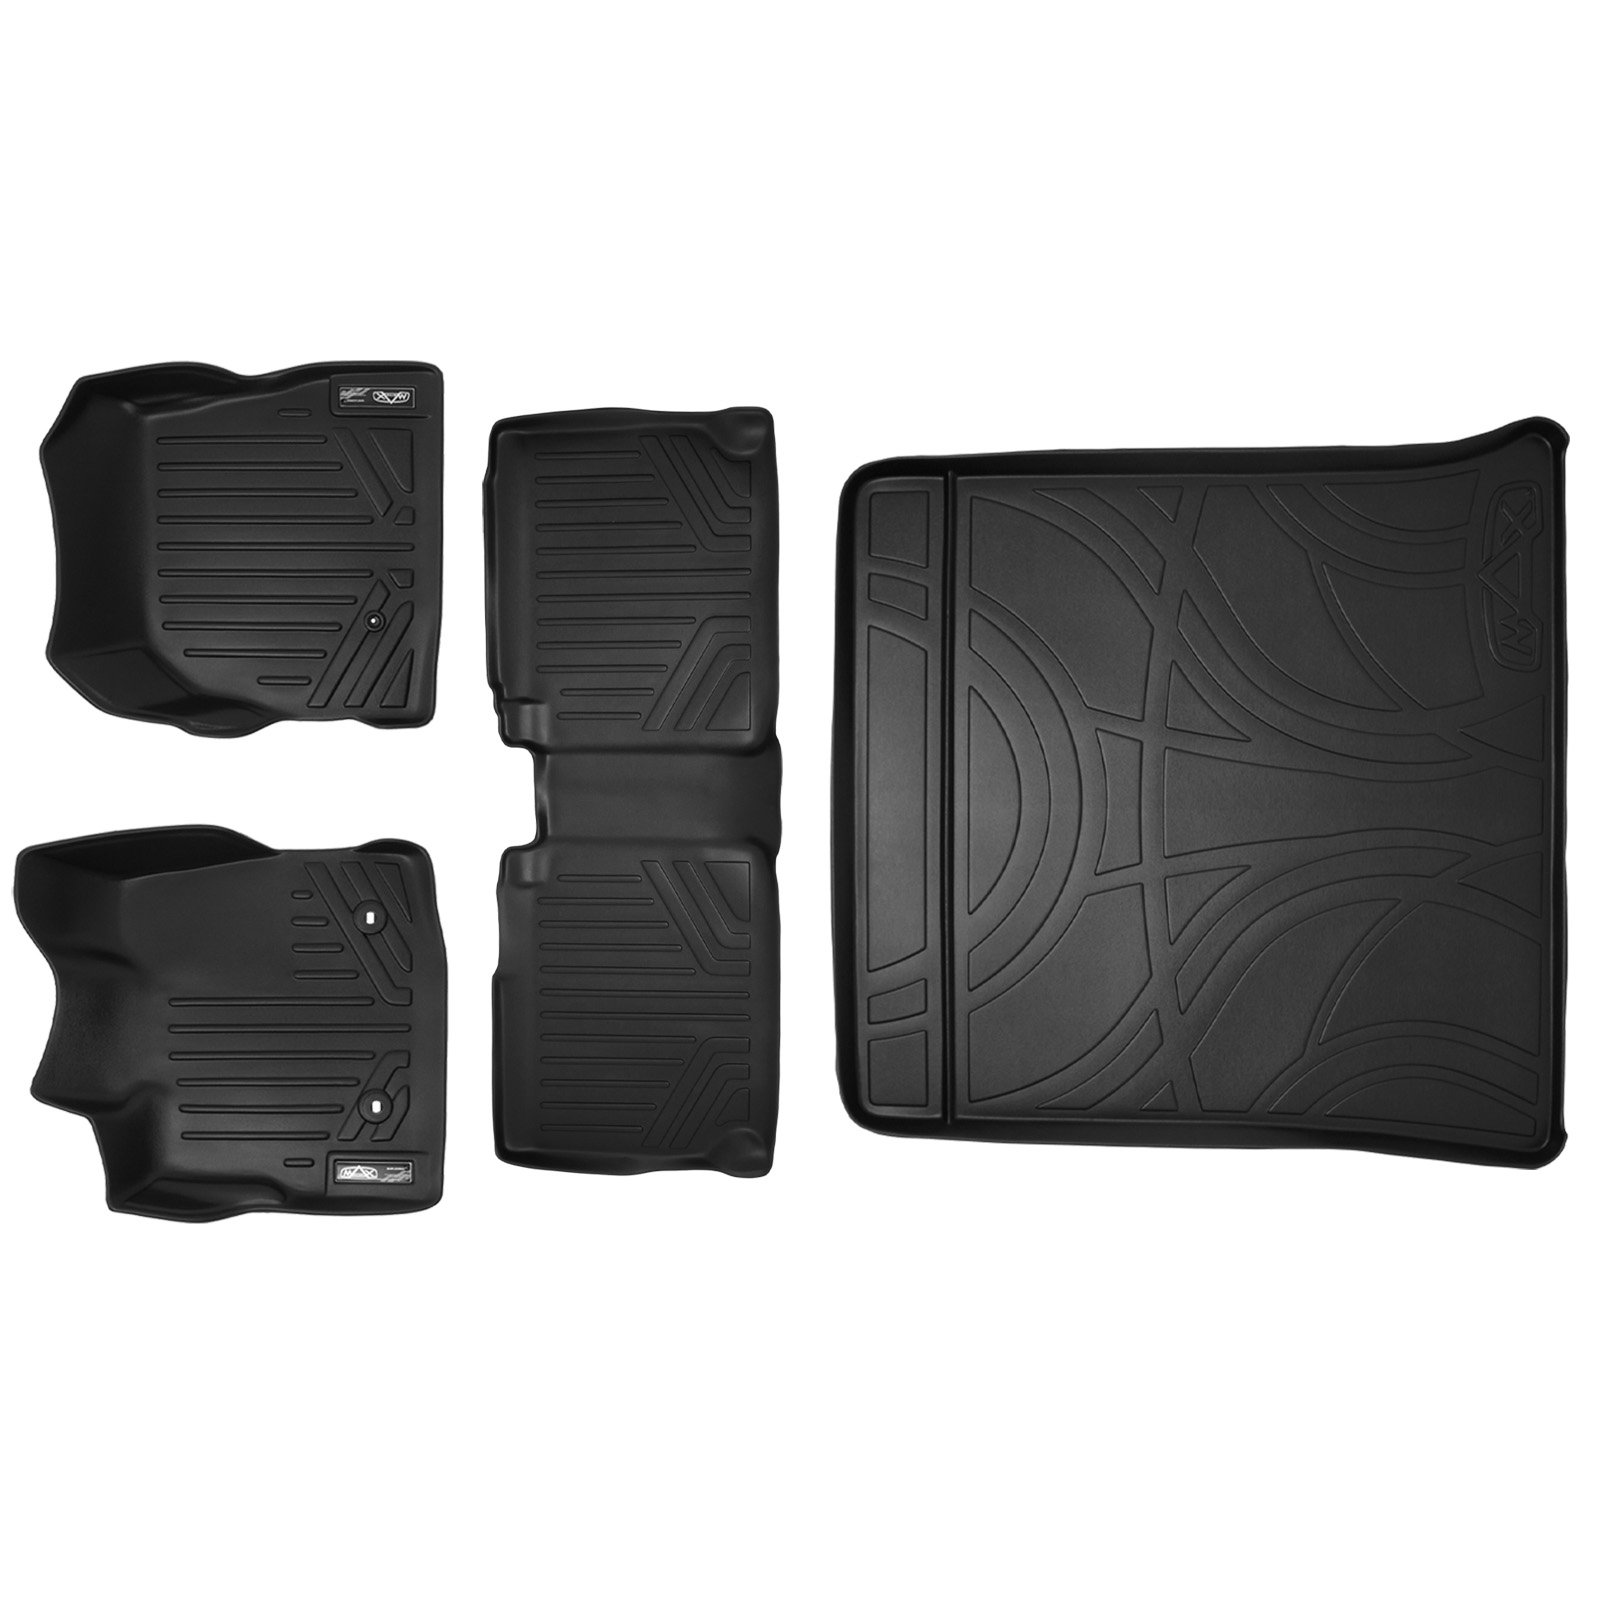 Floor Mats - All-weather Thermoplastic Rubber, Black 3-pc., Supercrew, Dual Retention, W/subwoofer